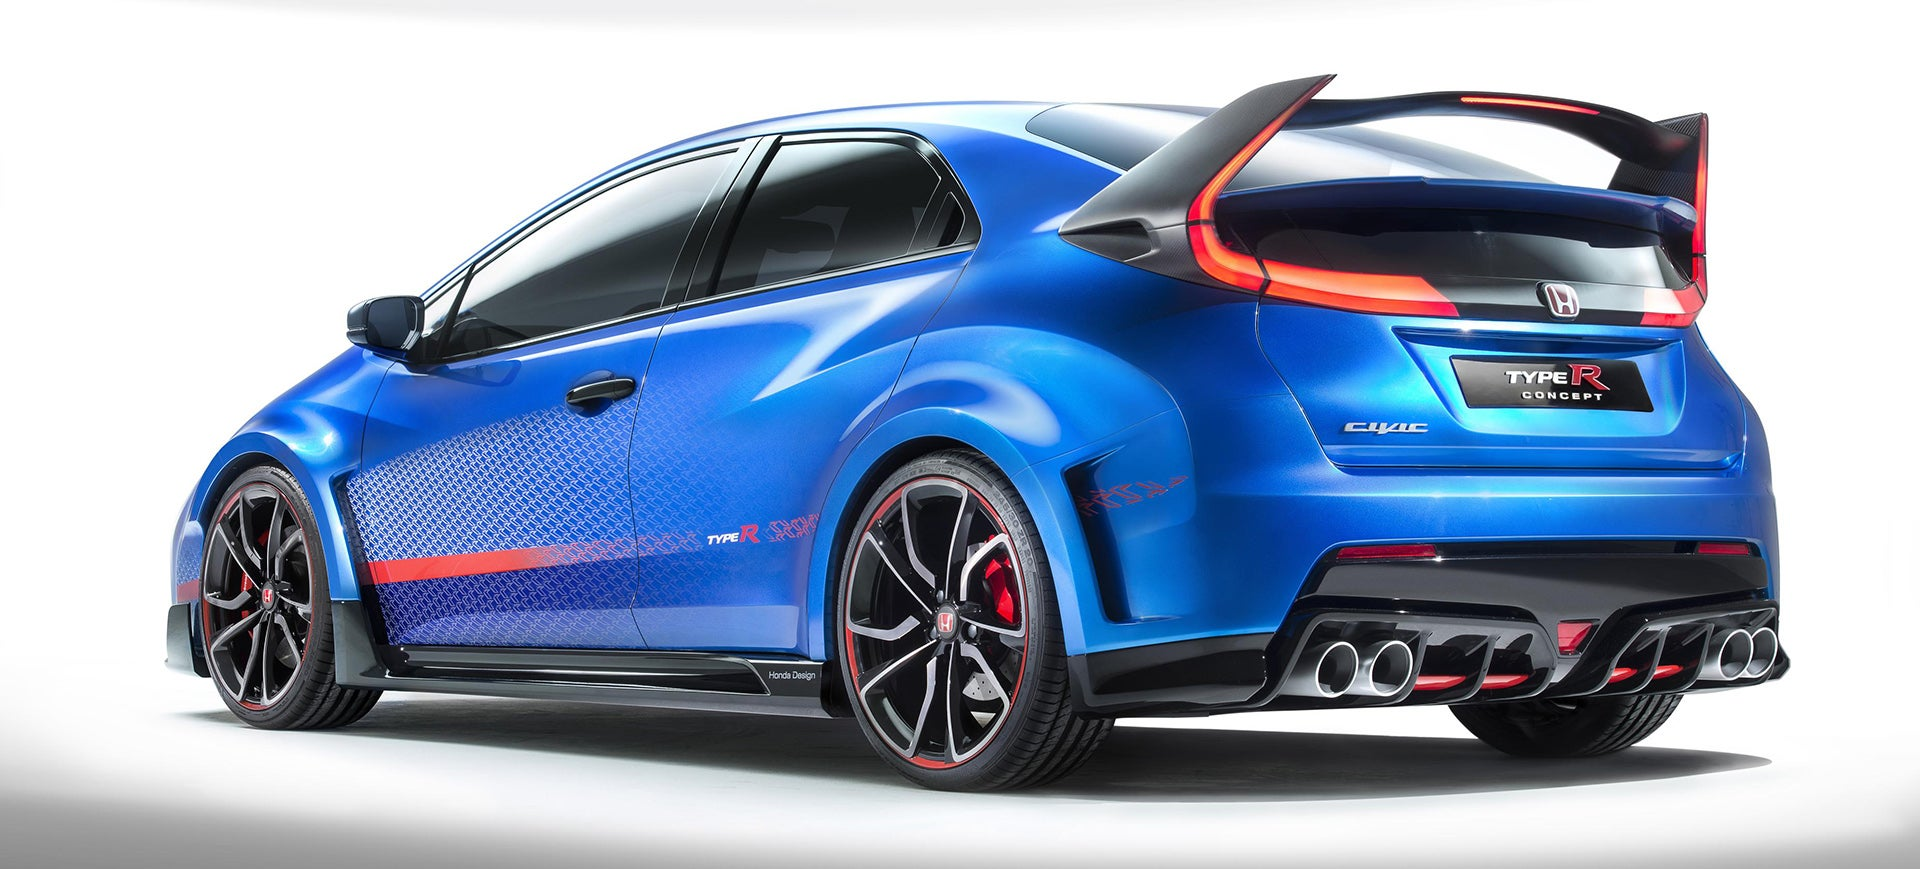 The 276 hp honda civic type r will be the most extreme for Where are honda civics made